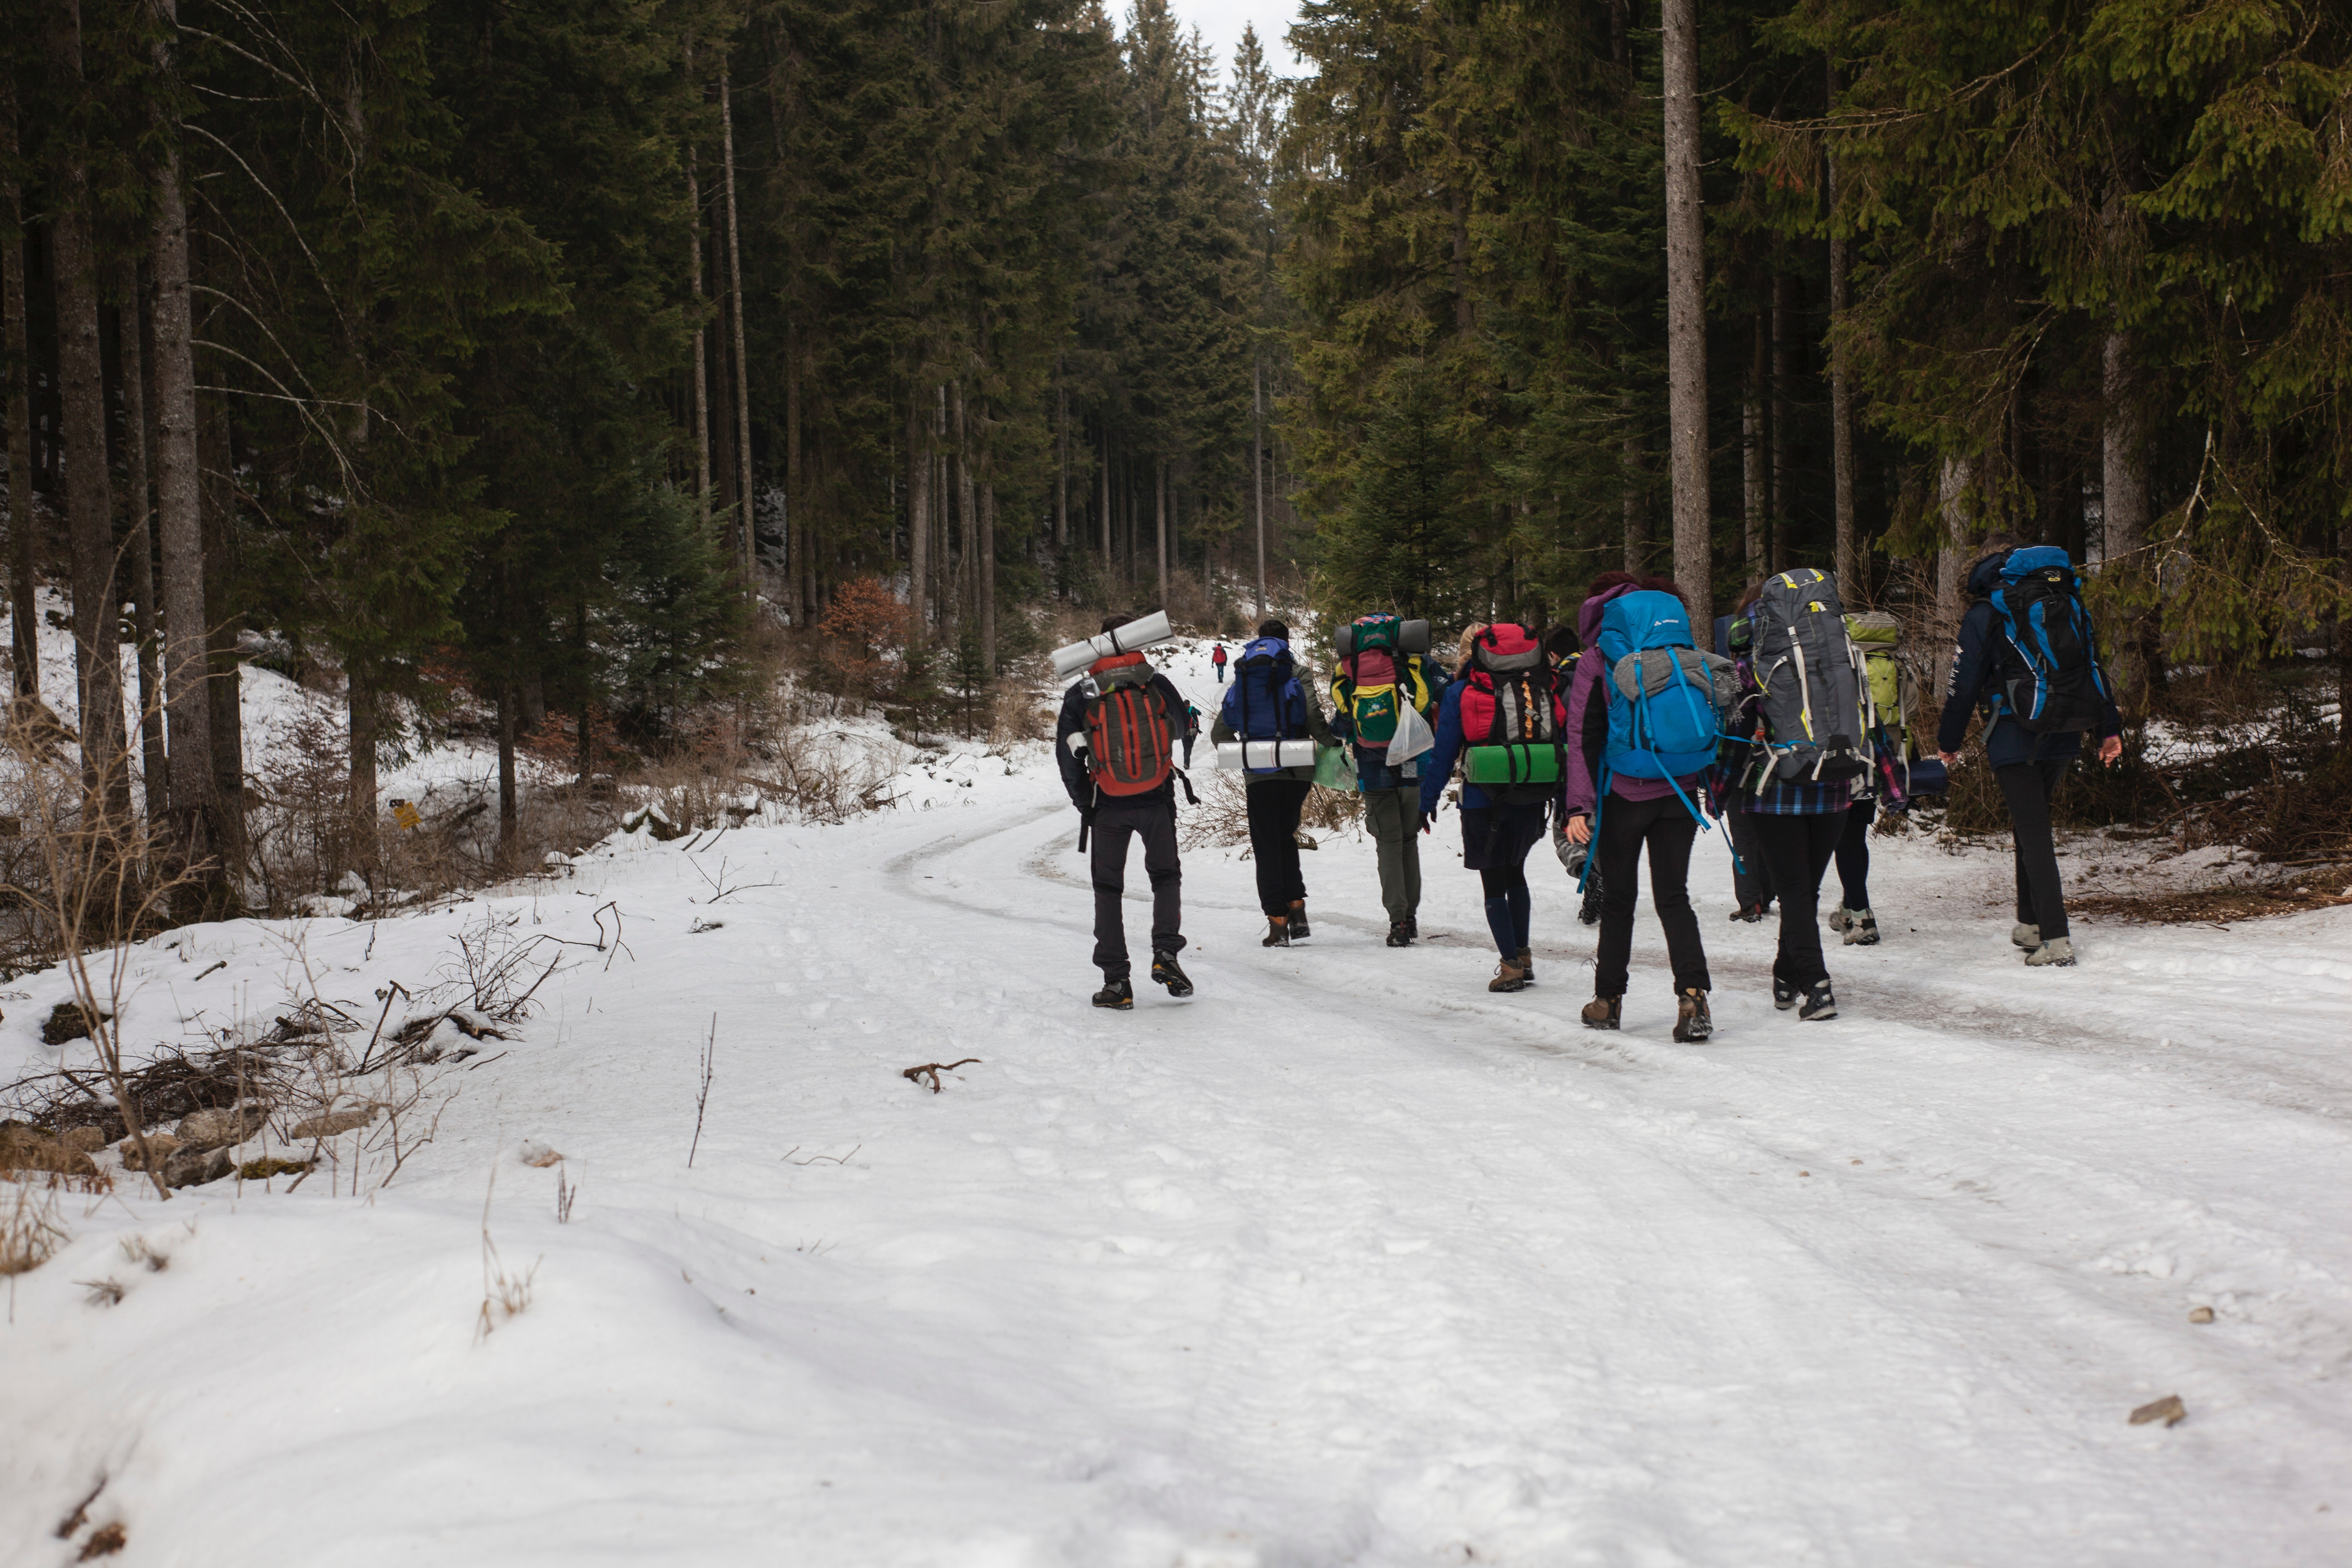 Mountaineers Walking on Snow, Backpack, People, Winter, Weather, HQ Photo